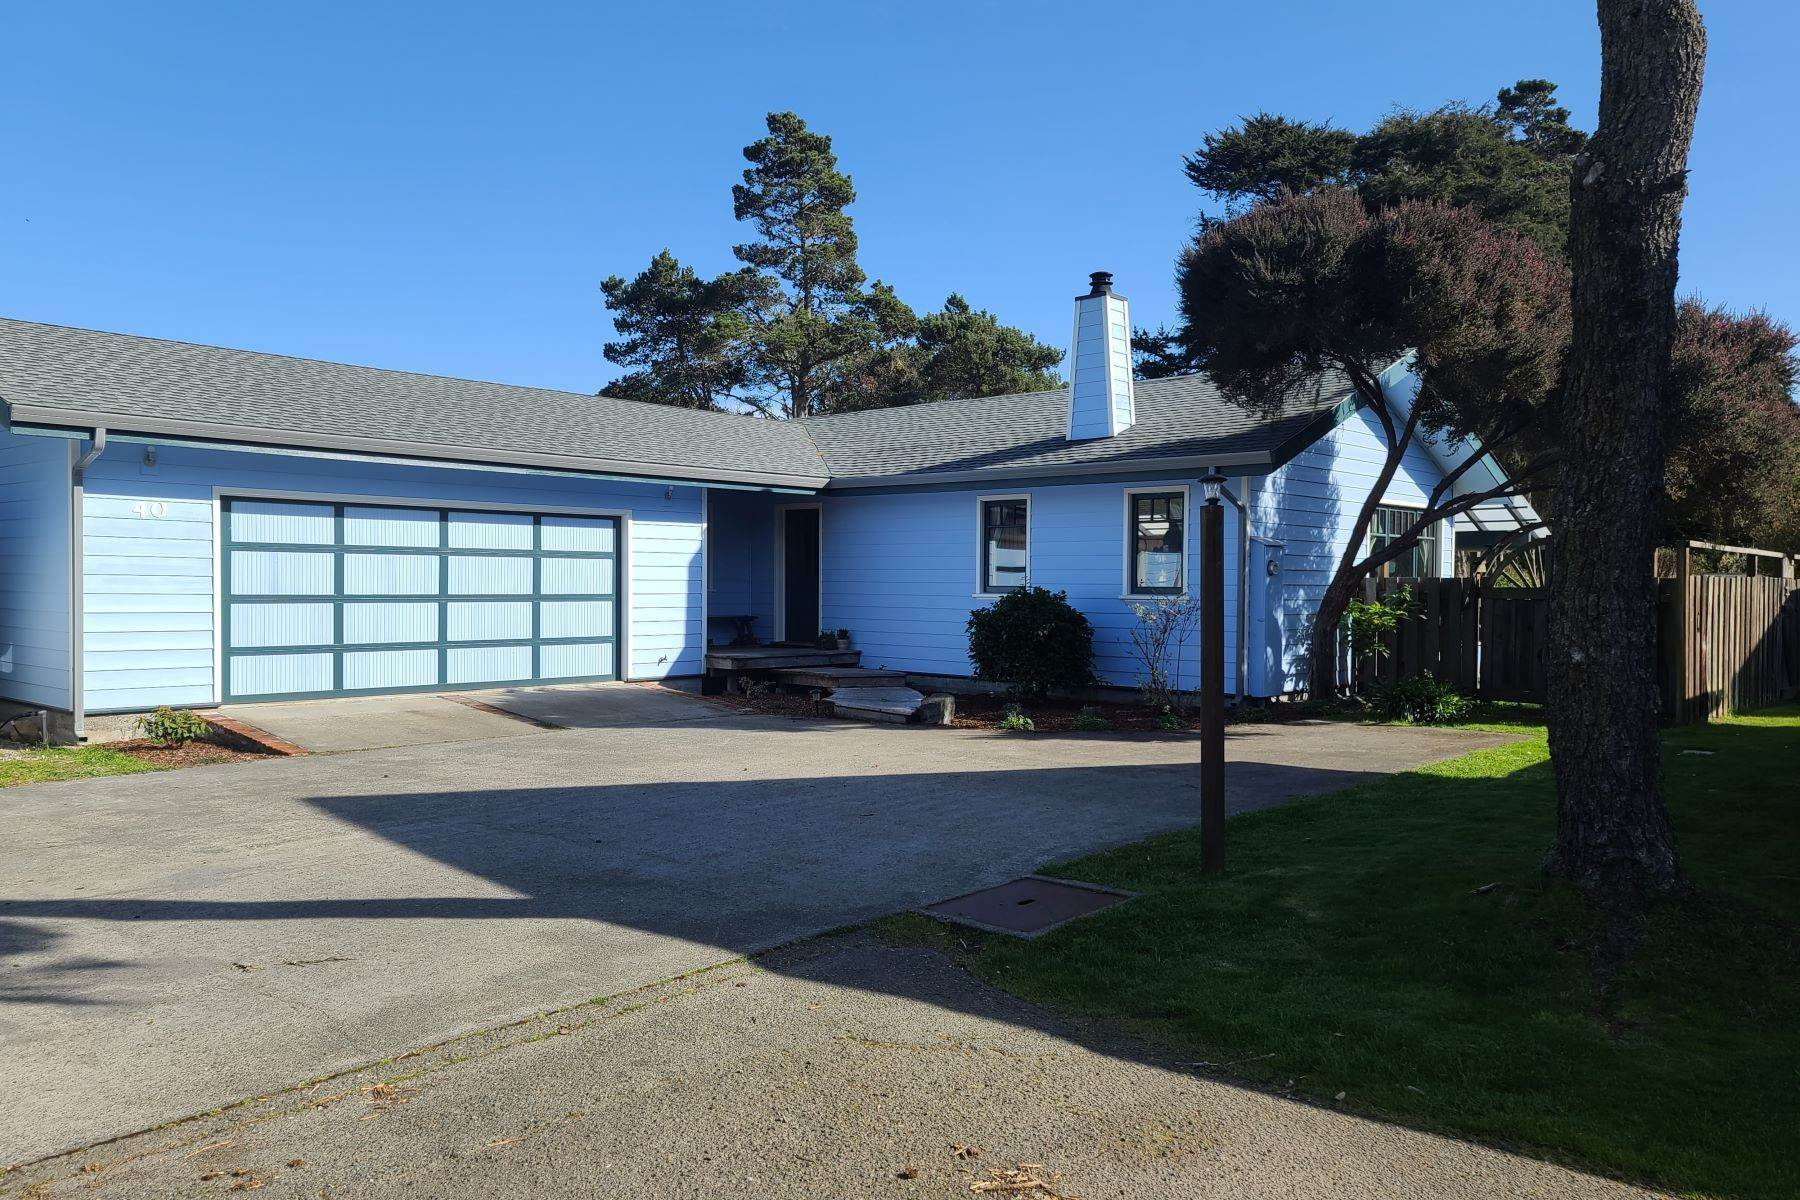 Single Family Homes for Sale at Immaculate Custom Home 40 Swing Tree Lane Fort Bragg, California 95437 United States